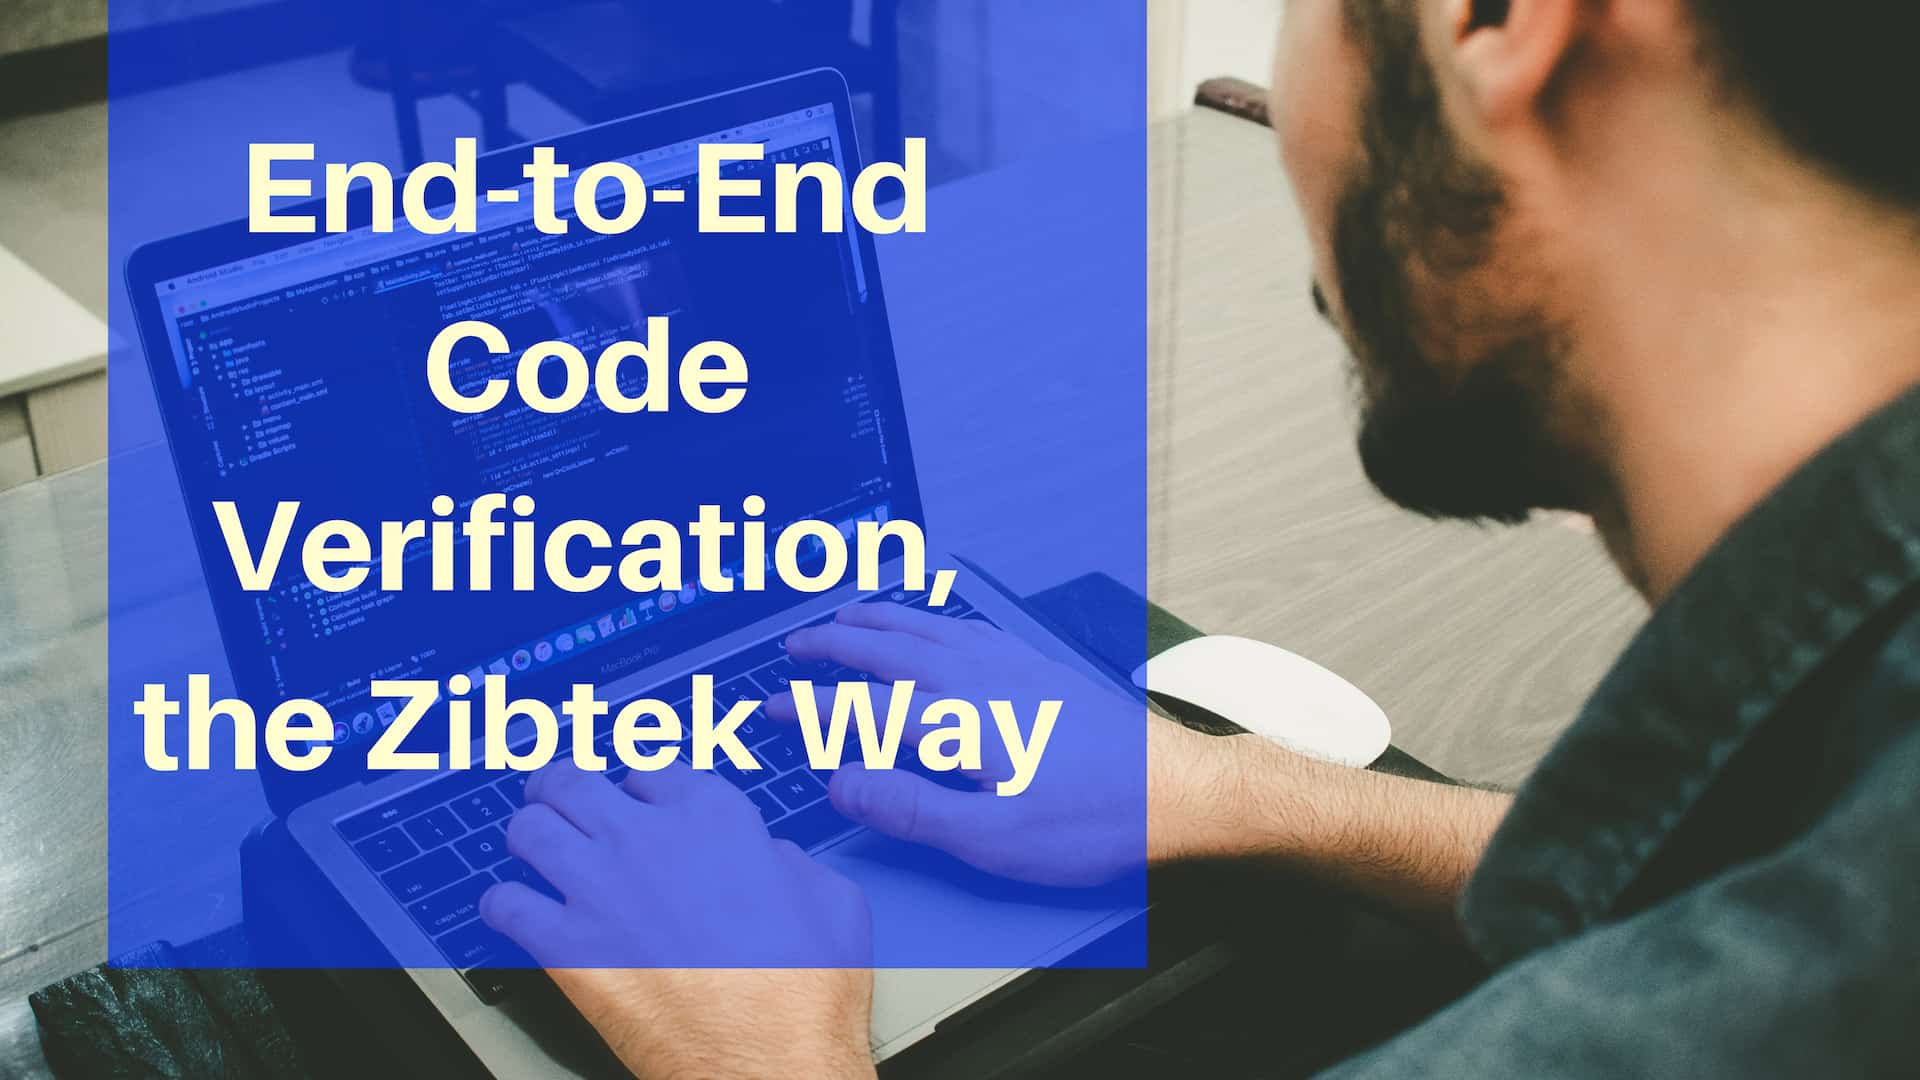 End-to-End Code Verification, The Zibtek Way